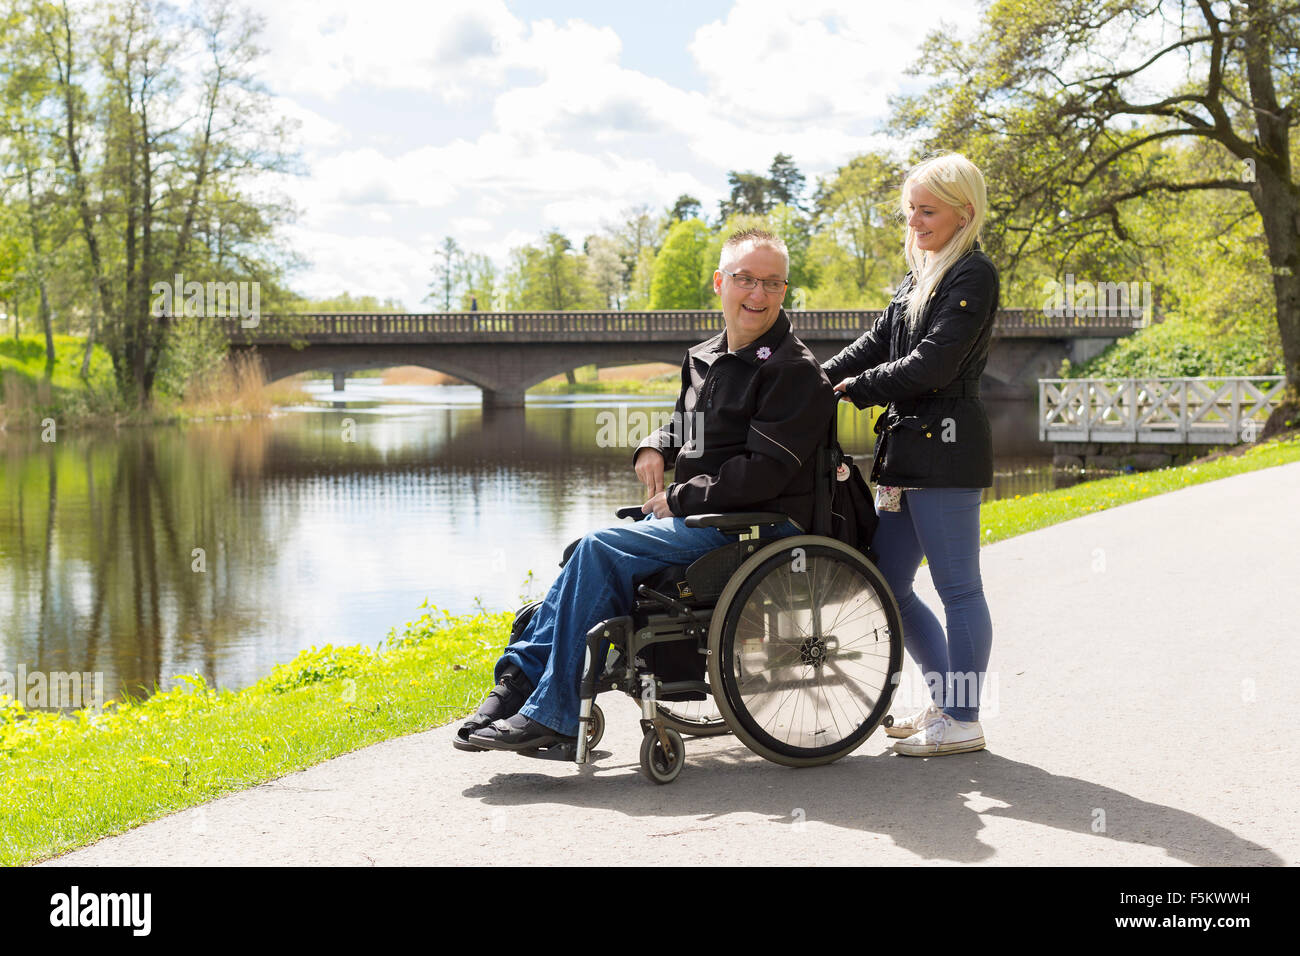 Sweden, Ostergotland, Mjolby, Man on wheelchair with personal assistant in park - Stock Image